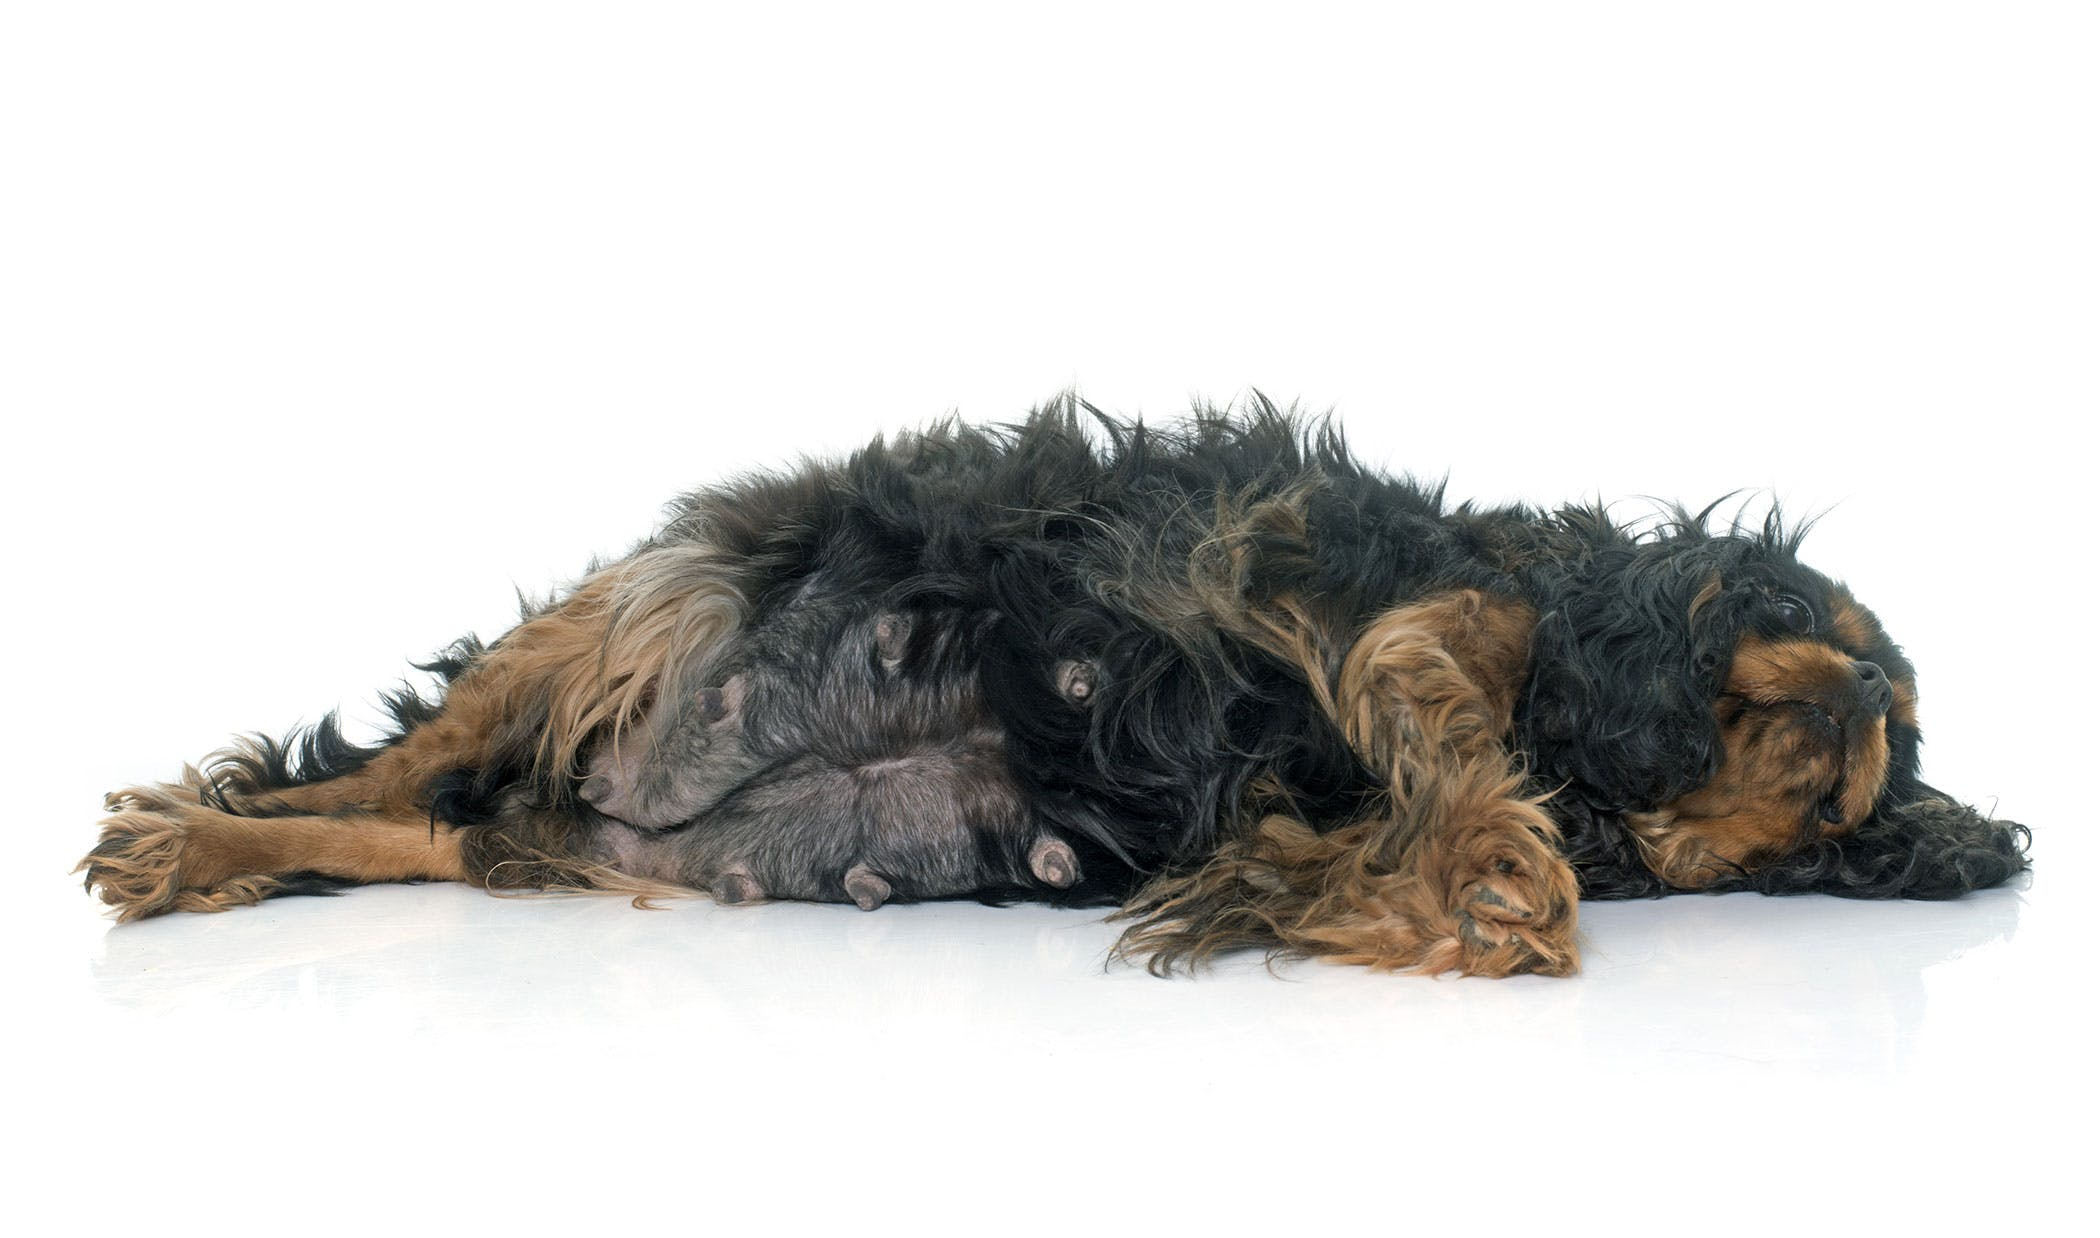 False Pregnancy in Dogs - Symptoms, Causes, Diagnosis, Treatment